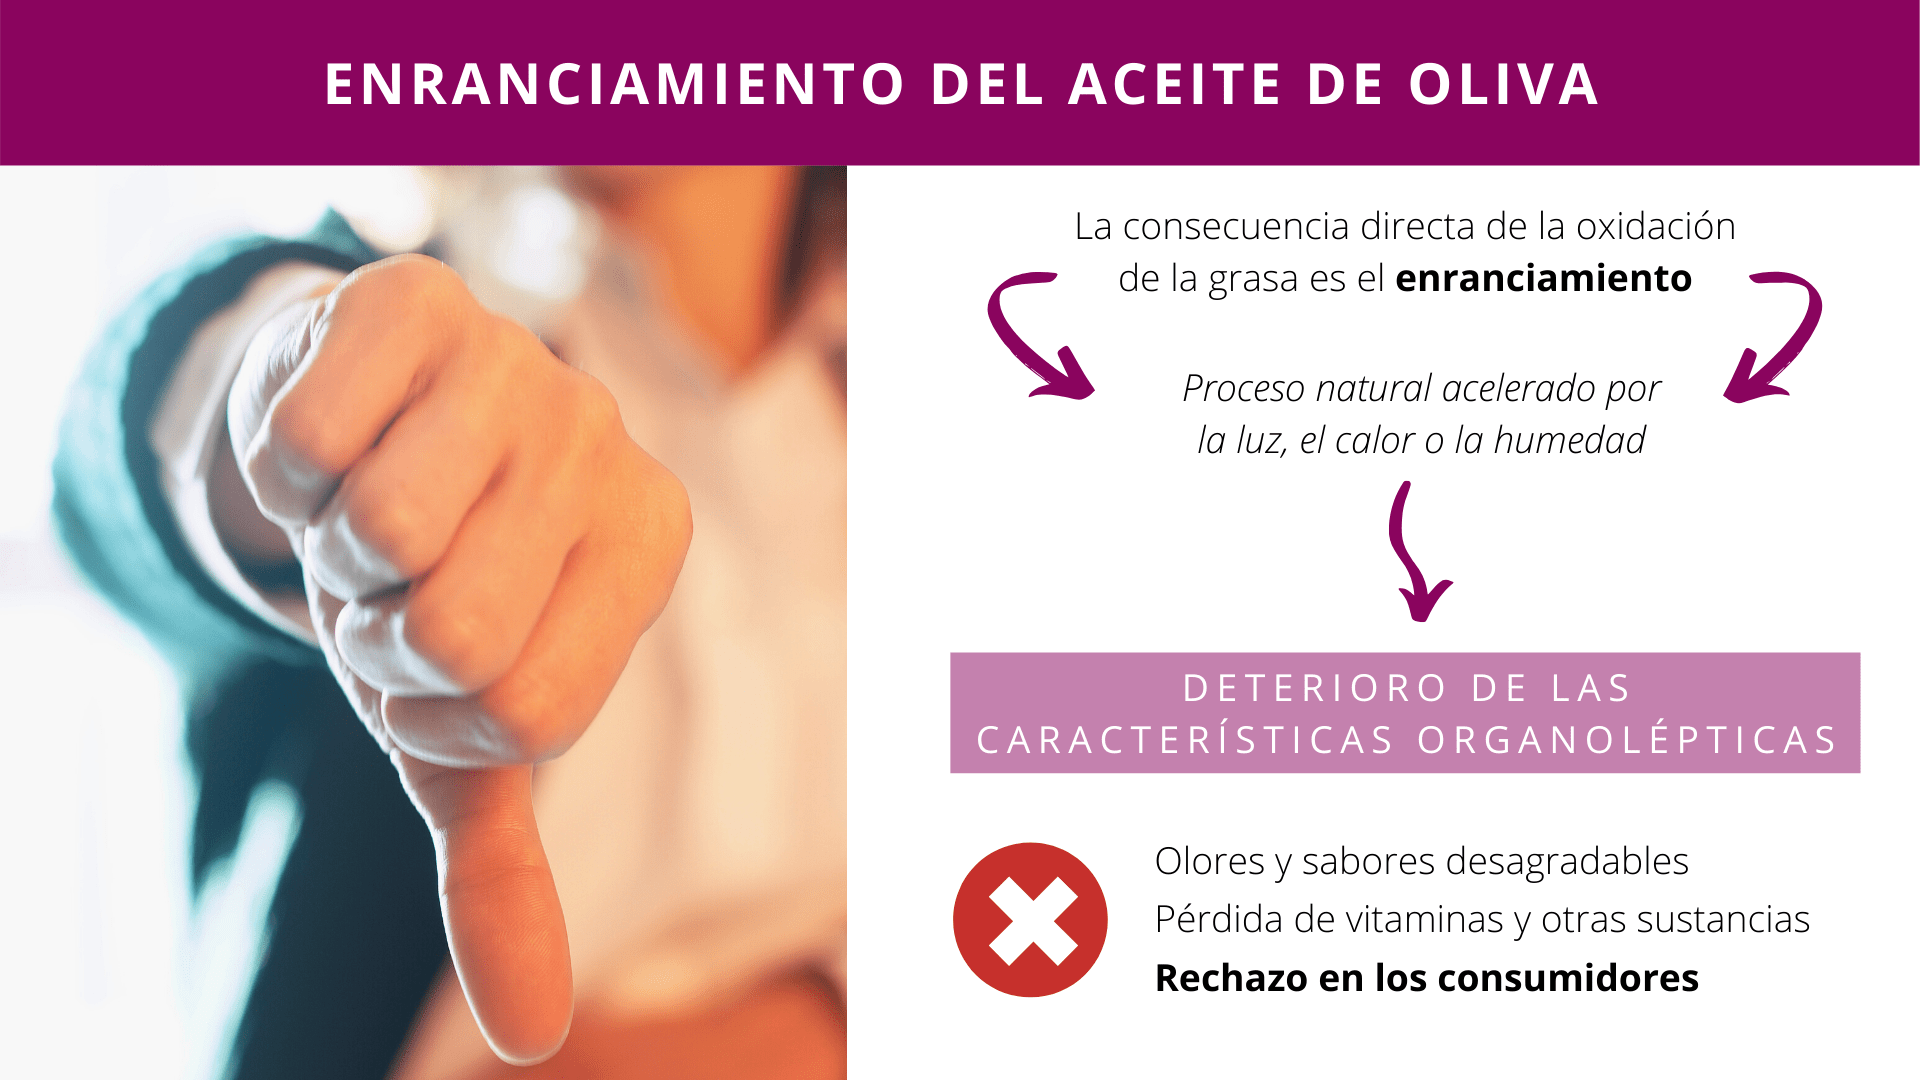 Parámetos analíticos aceites oliva 3